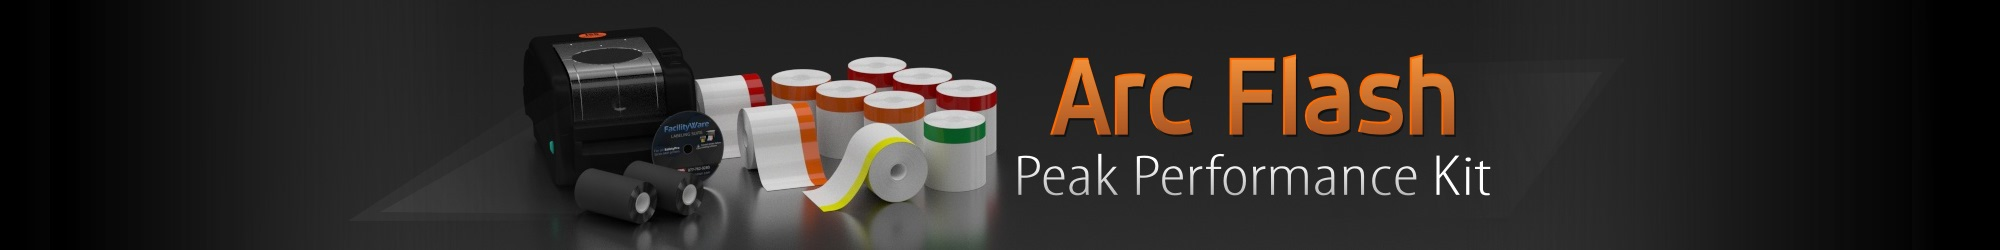 Arc Flash Peak Performance Kit